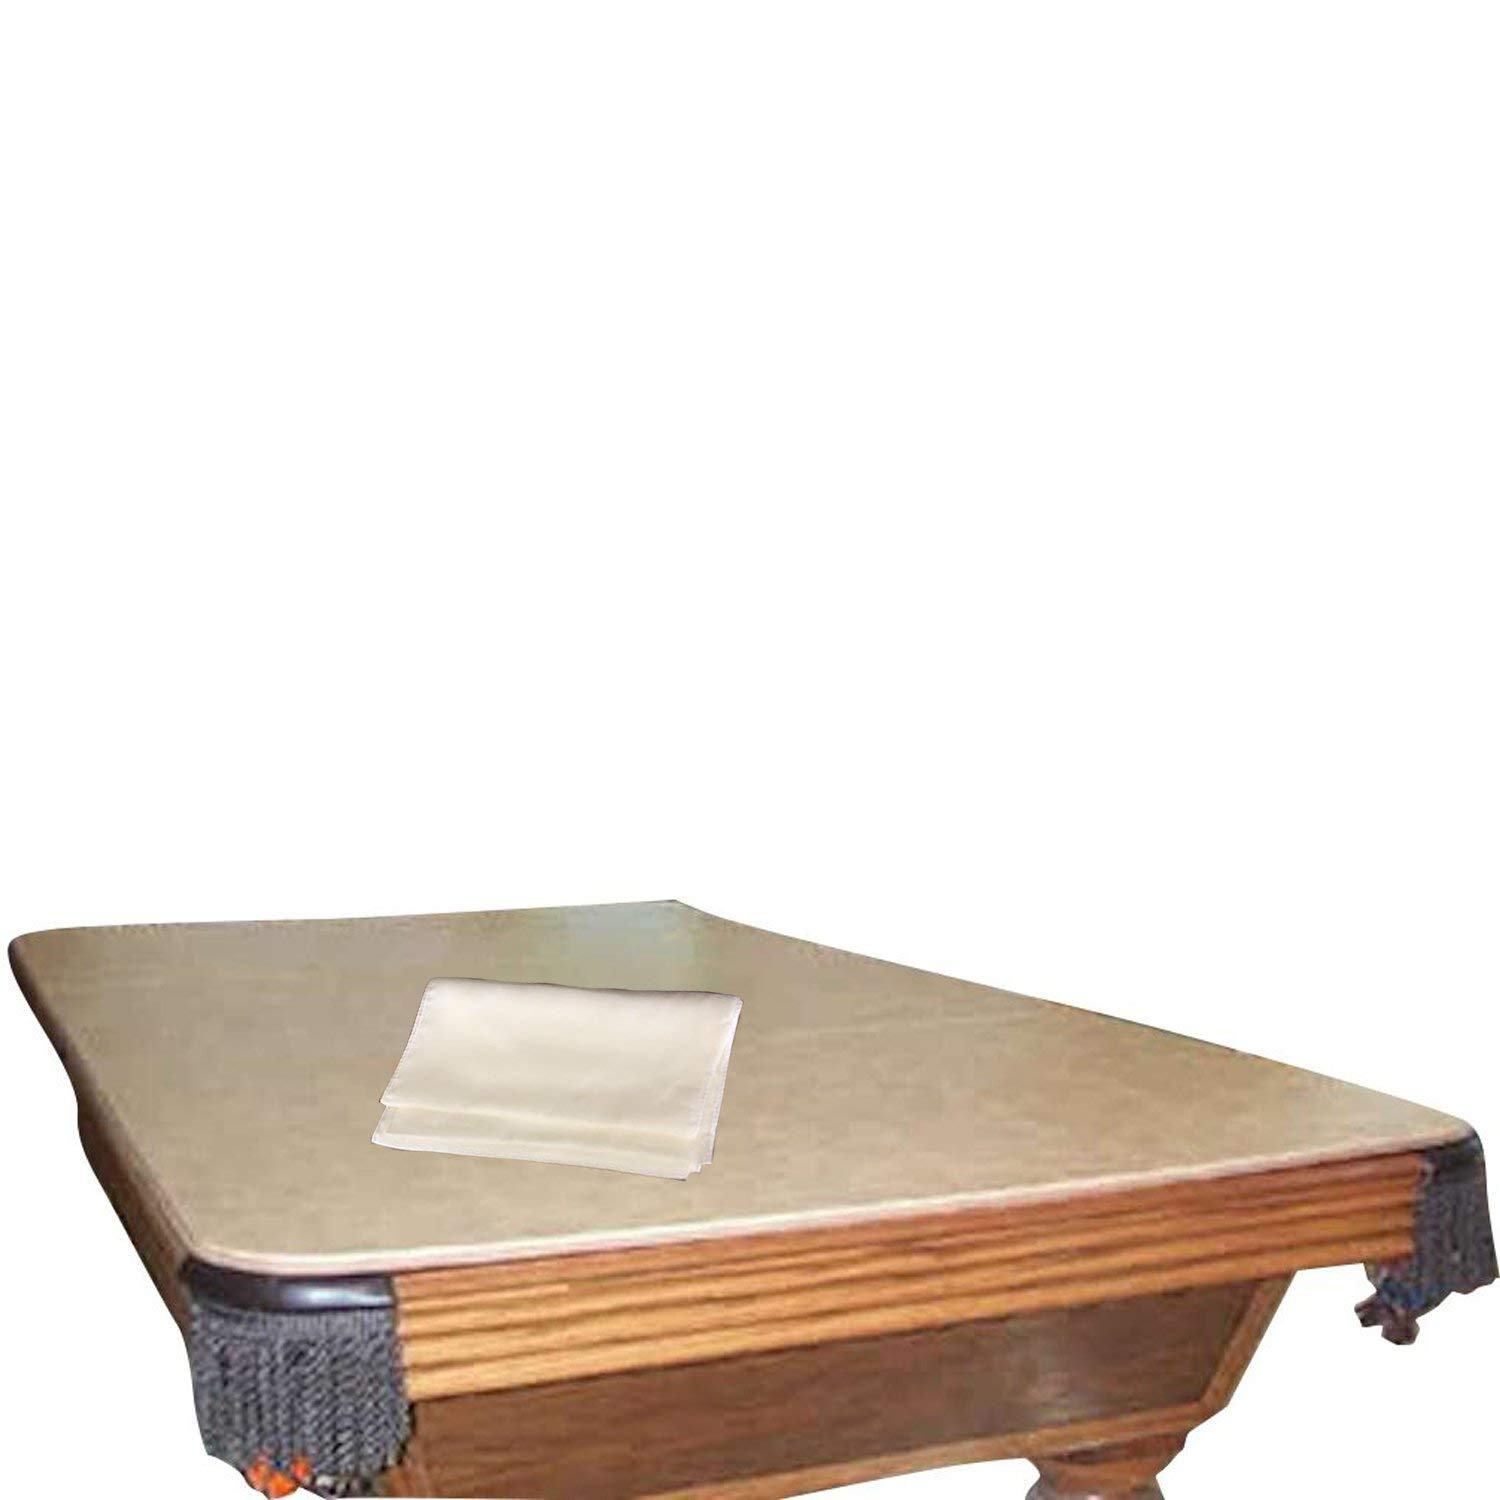 cheap diy table pad find diy table pad deals on line at alibaba com rh guide alibaba com